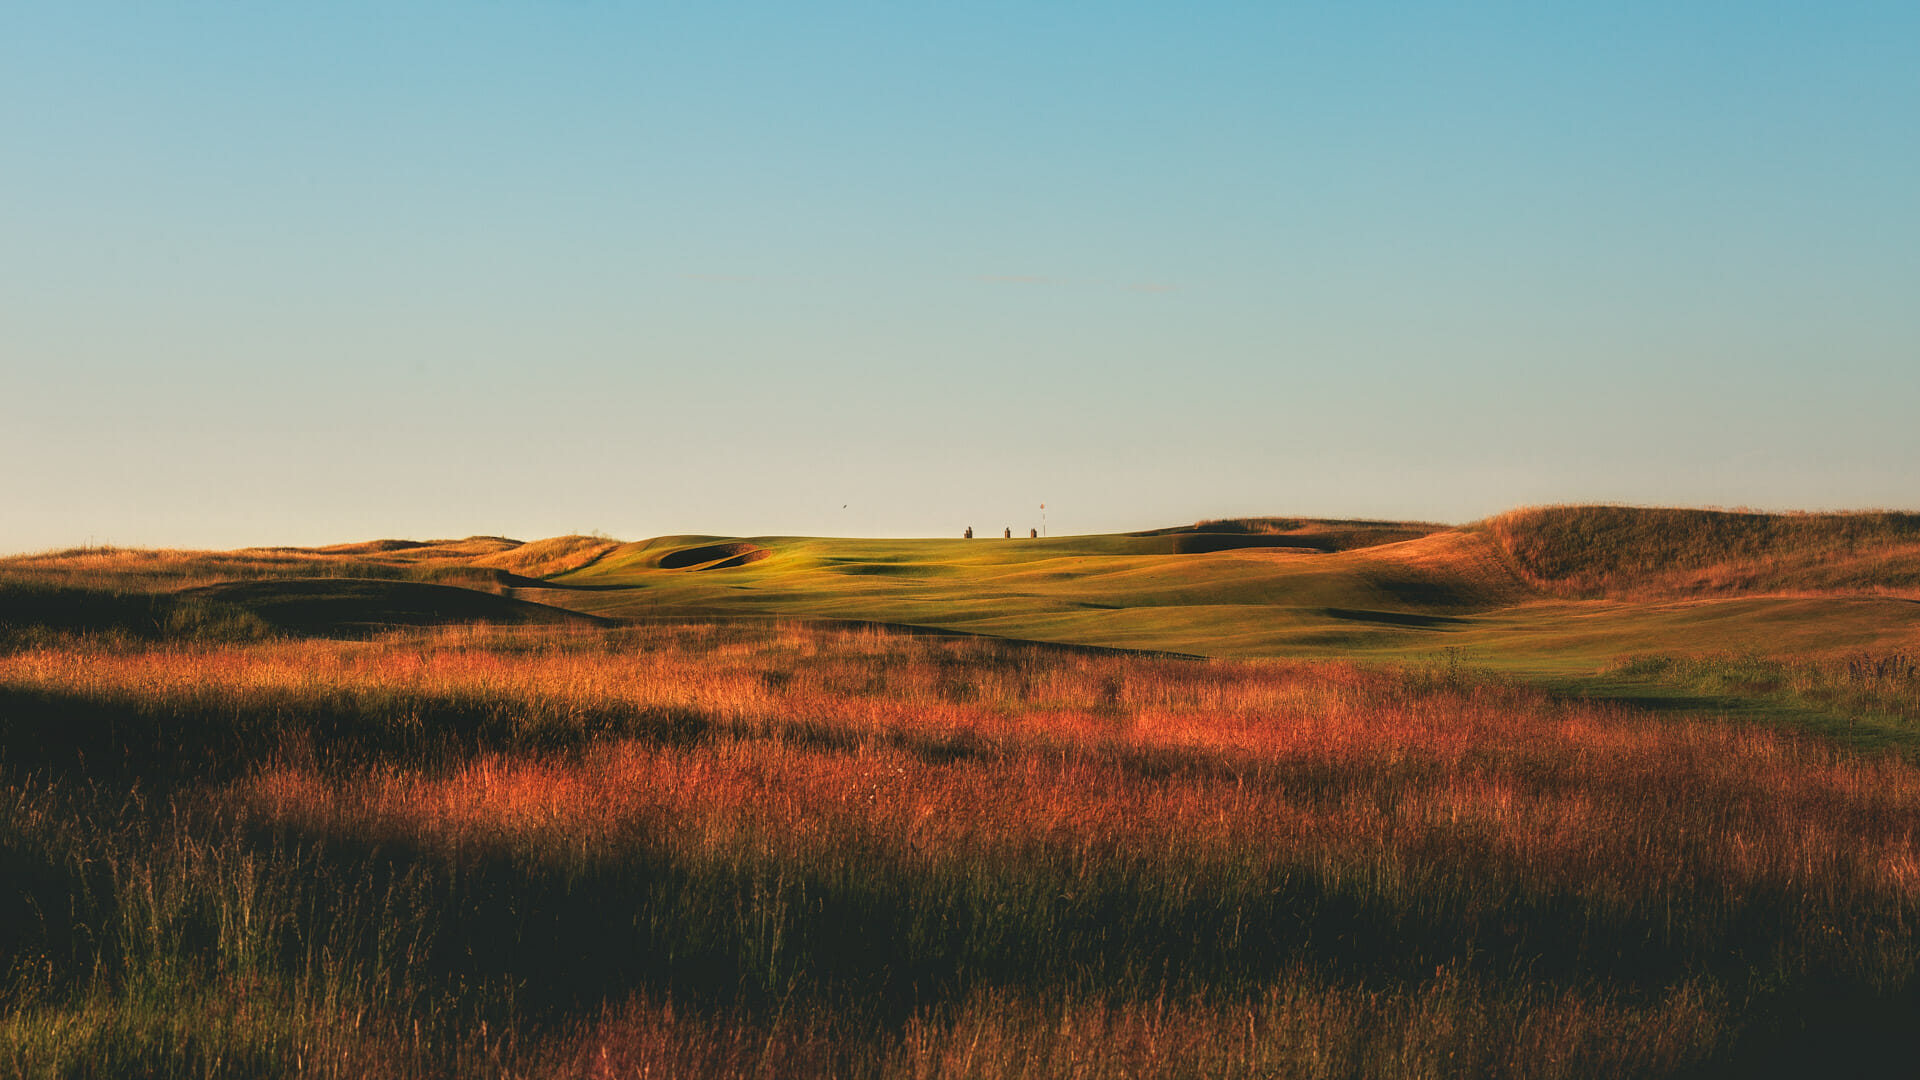 Image of long reeds with golden light touching the golf course at Royal St. George's Golf Course, Kent, England